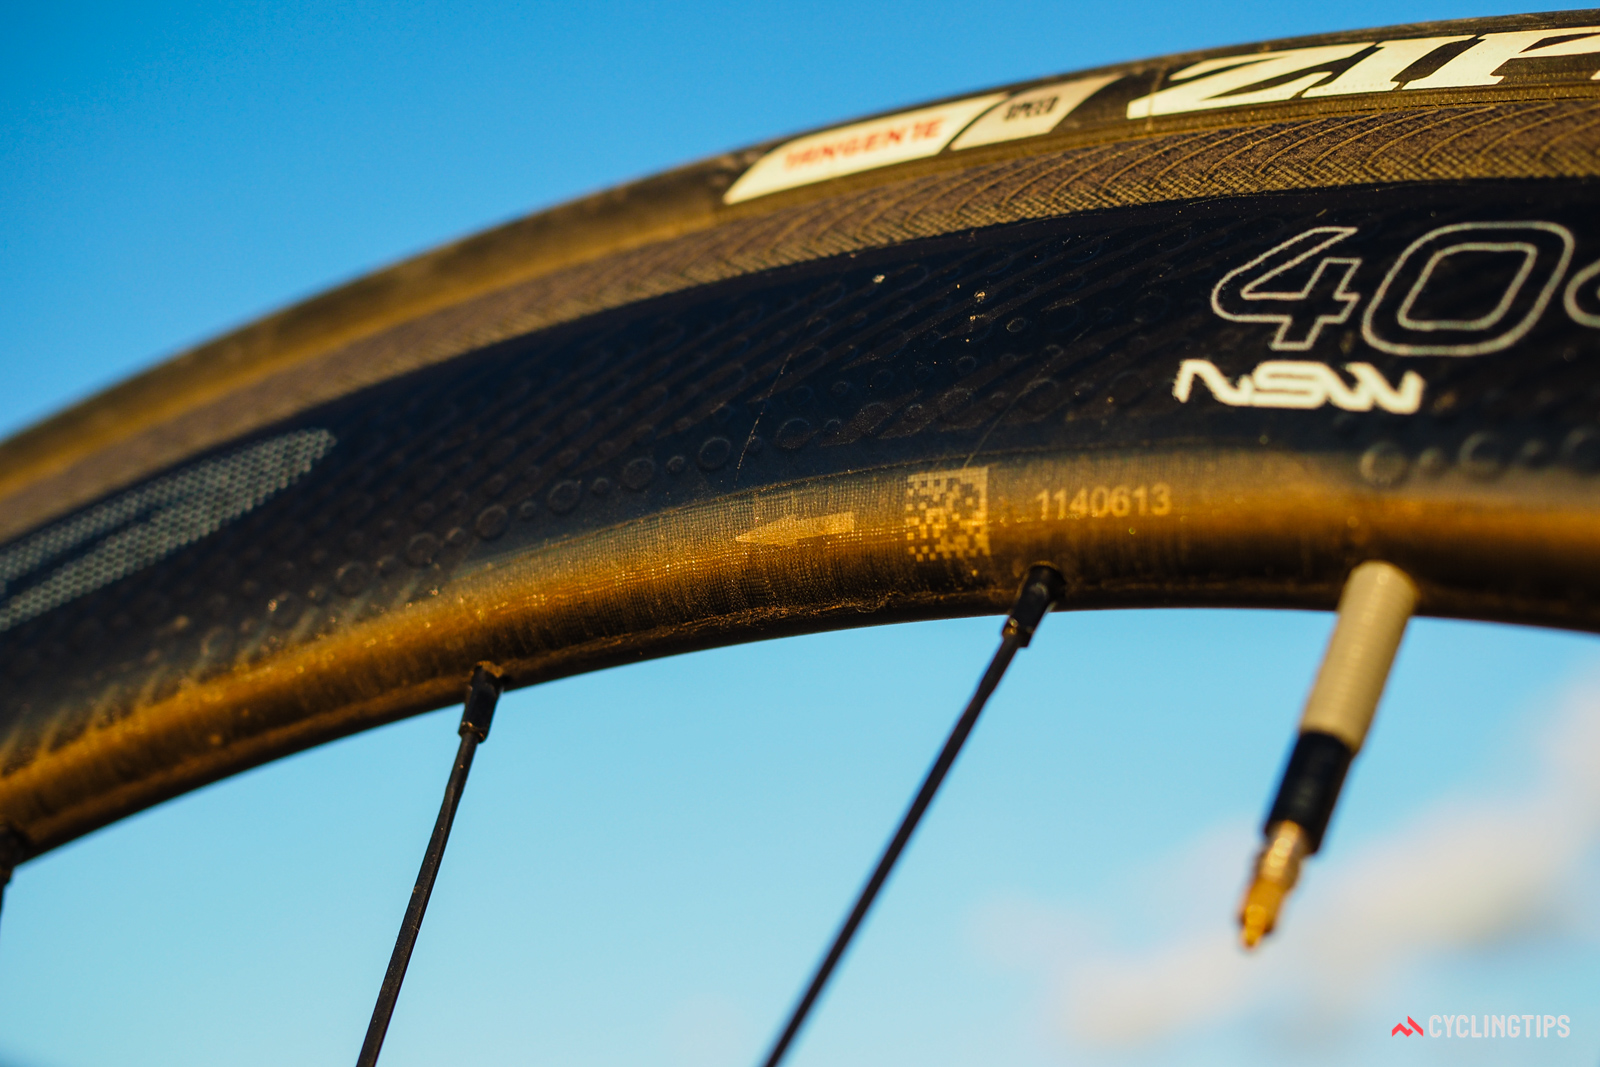 Because of the dimpling pattern and the shape of the sidewall grooves, the rims are marked with a directional arrow.